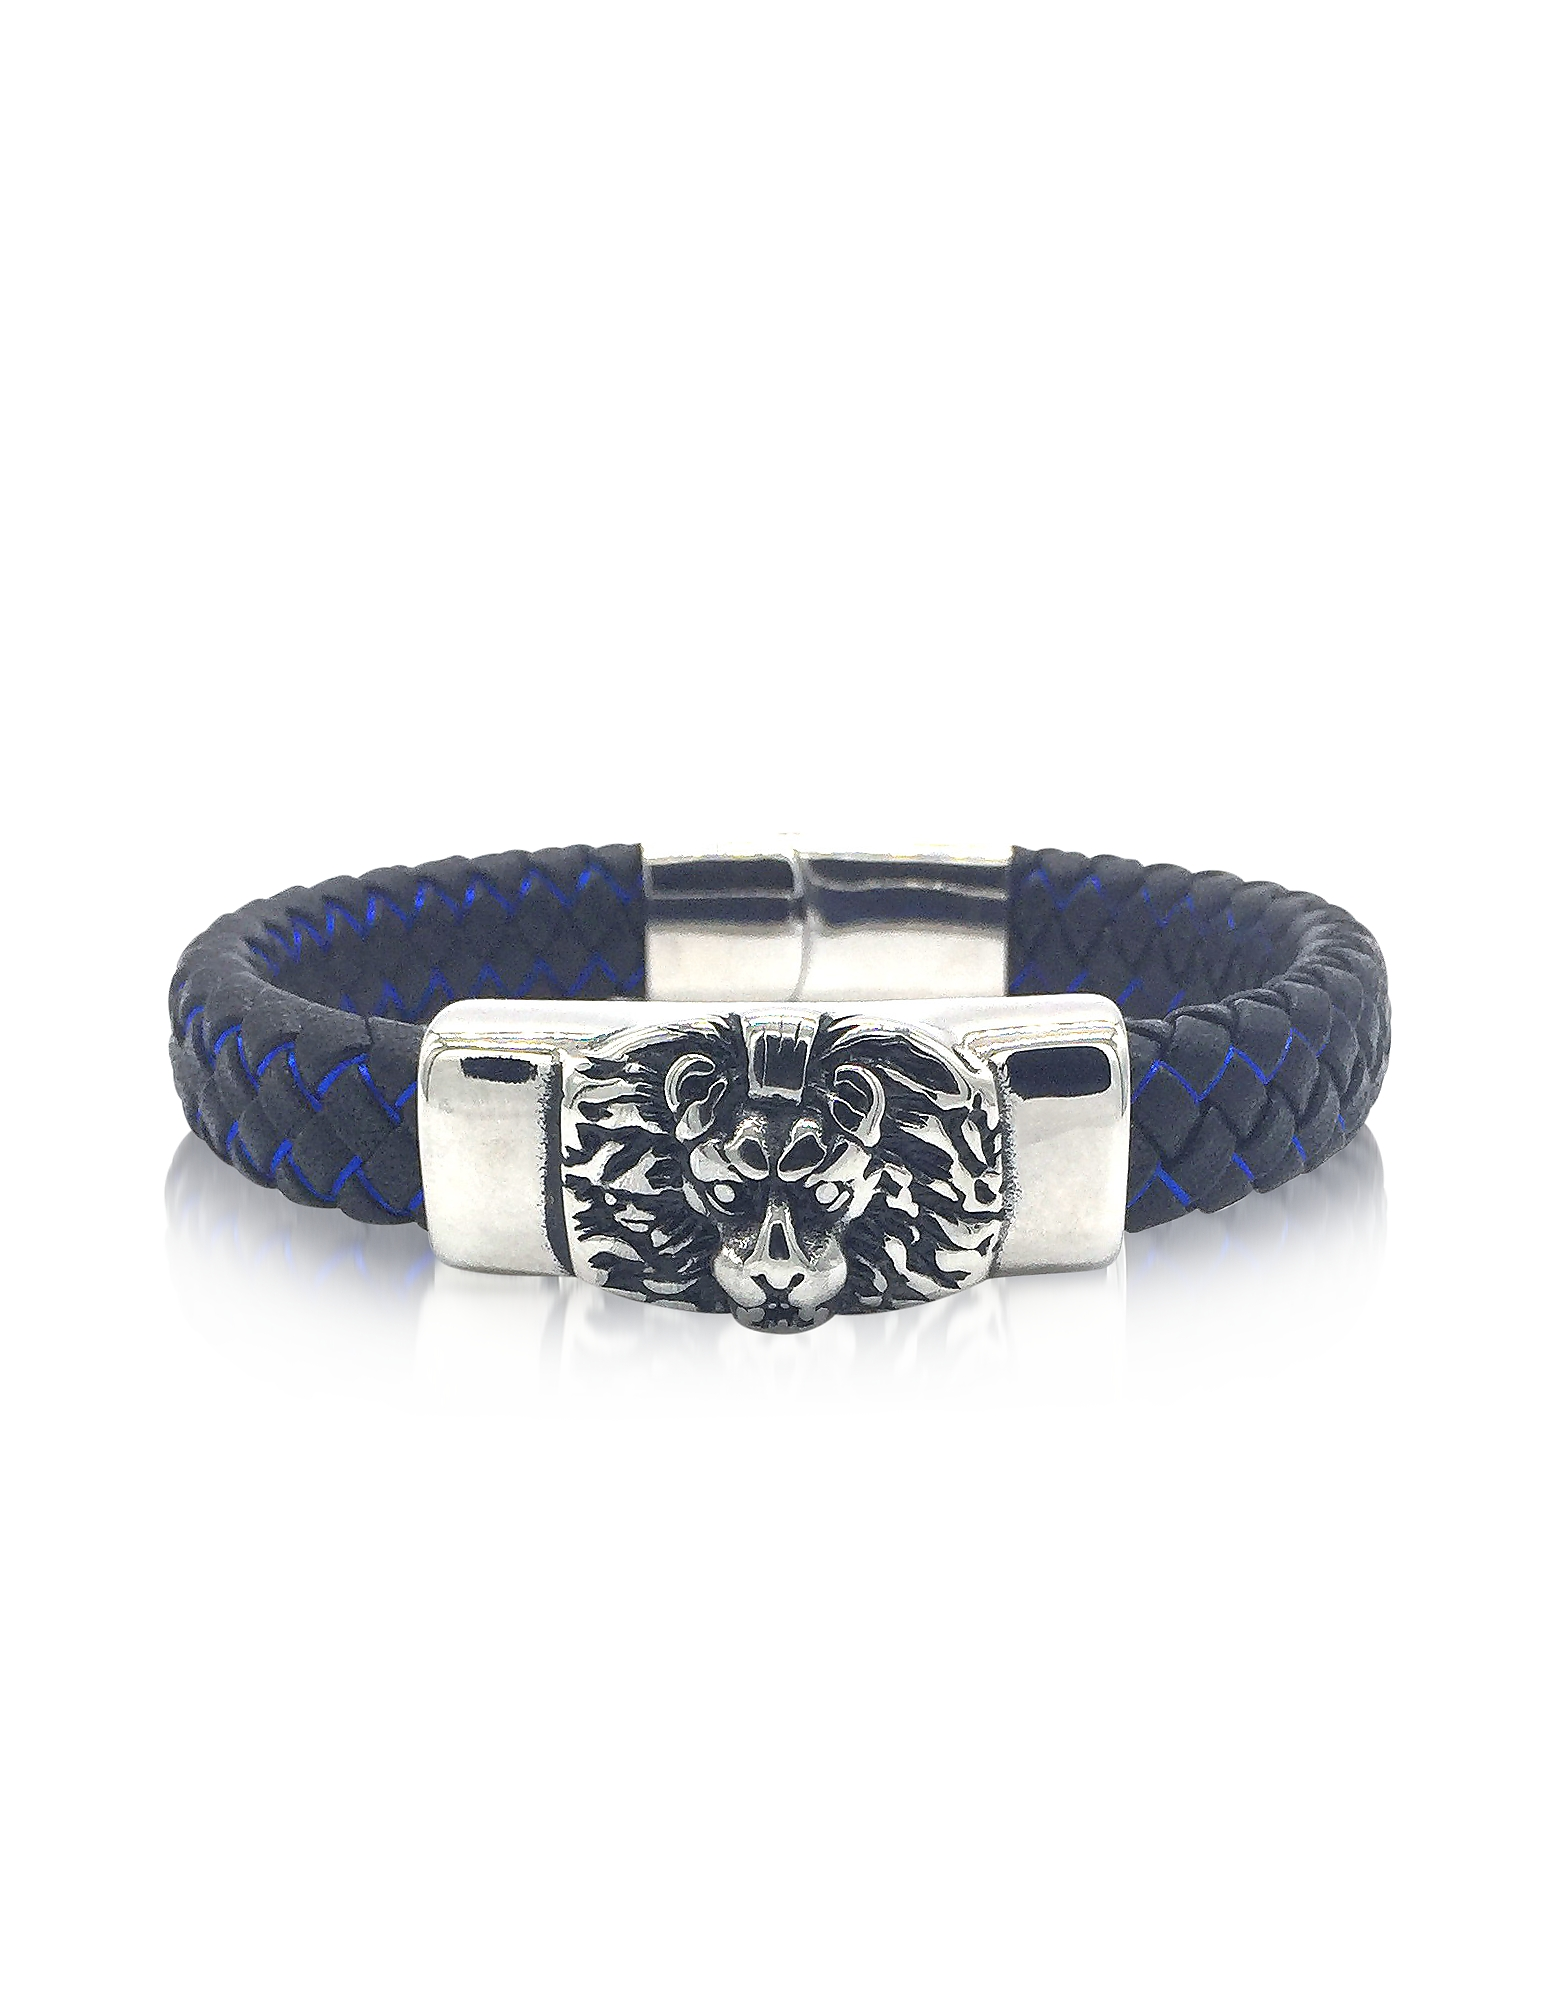 Image of Blackbourne Designer Men's Bracelets, Lion Engraved Stainless Steel and Braided Leather Men's Bracelet